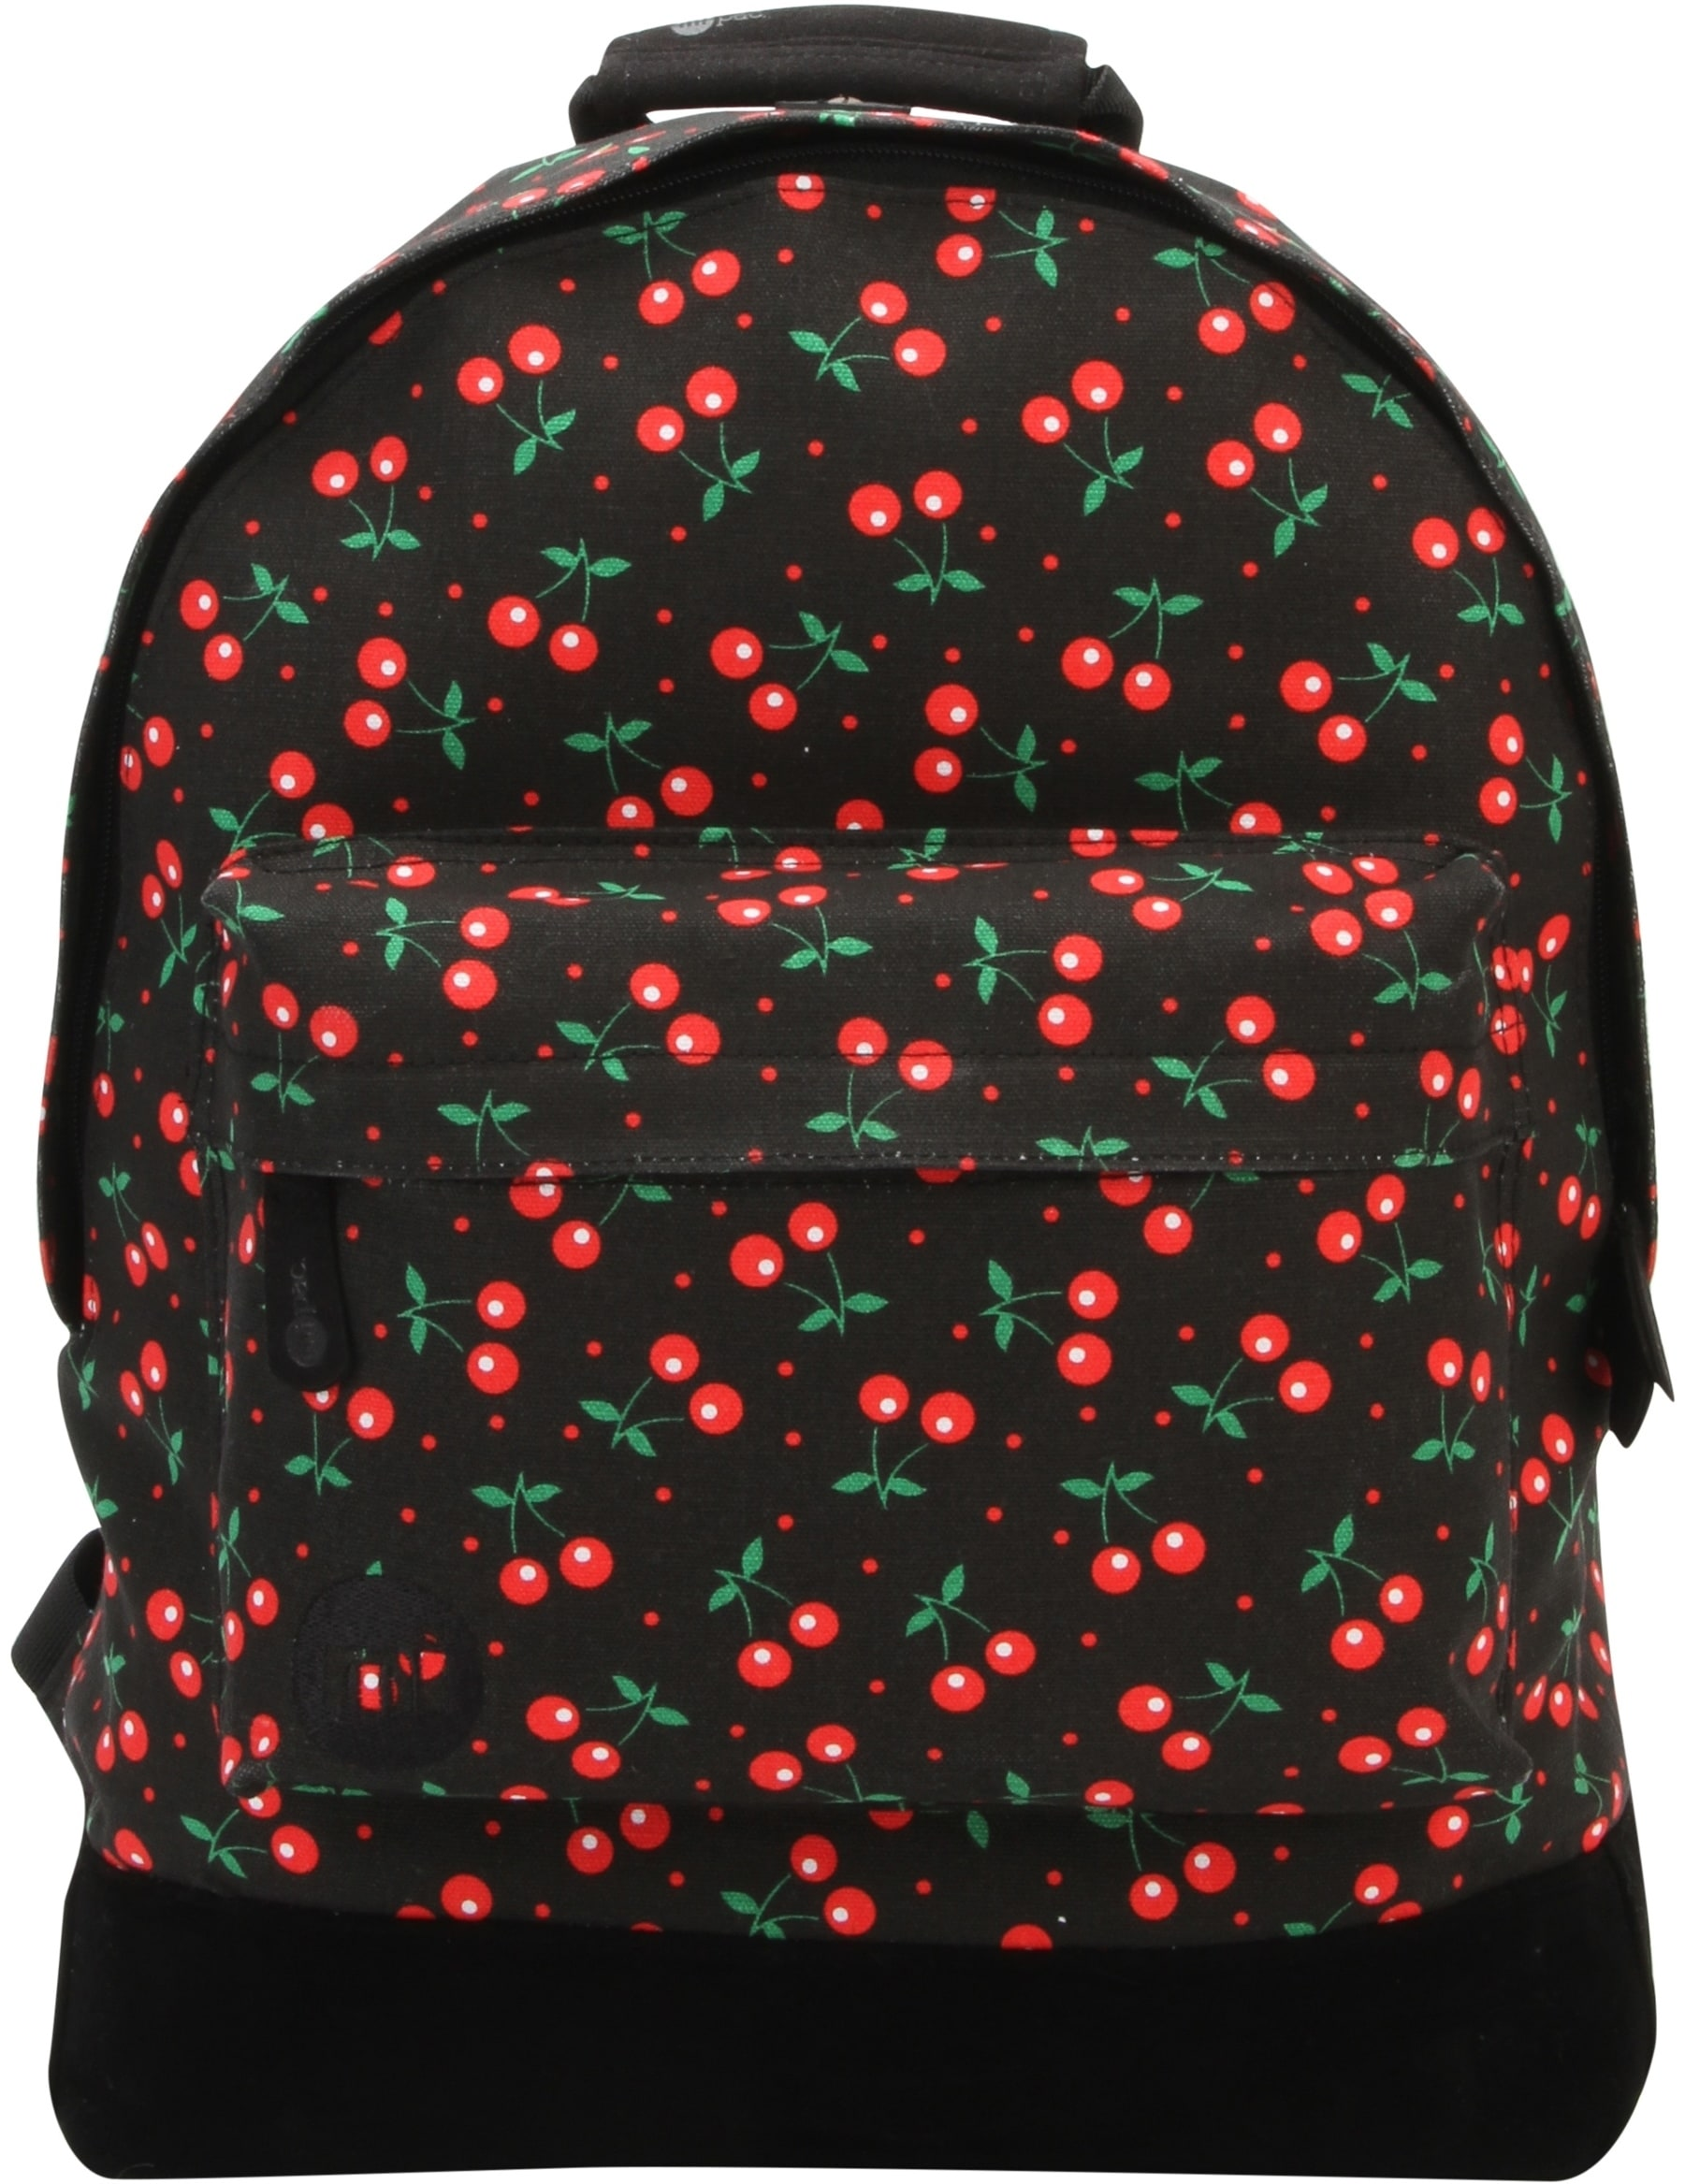 MiPac Cherries Backpack  Black